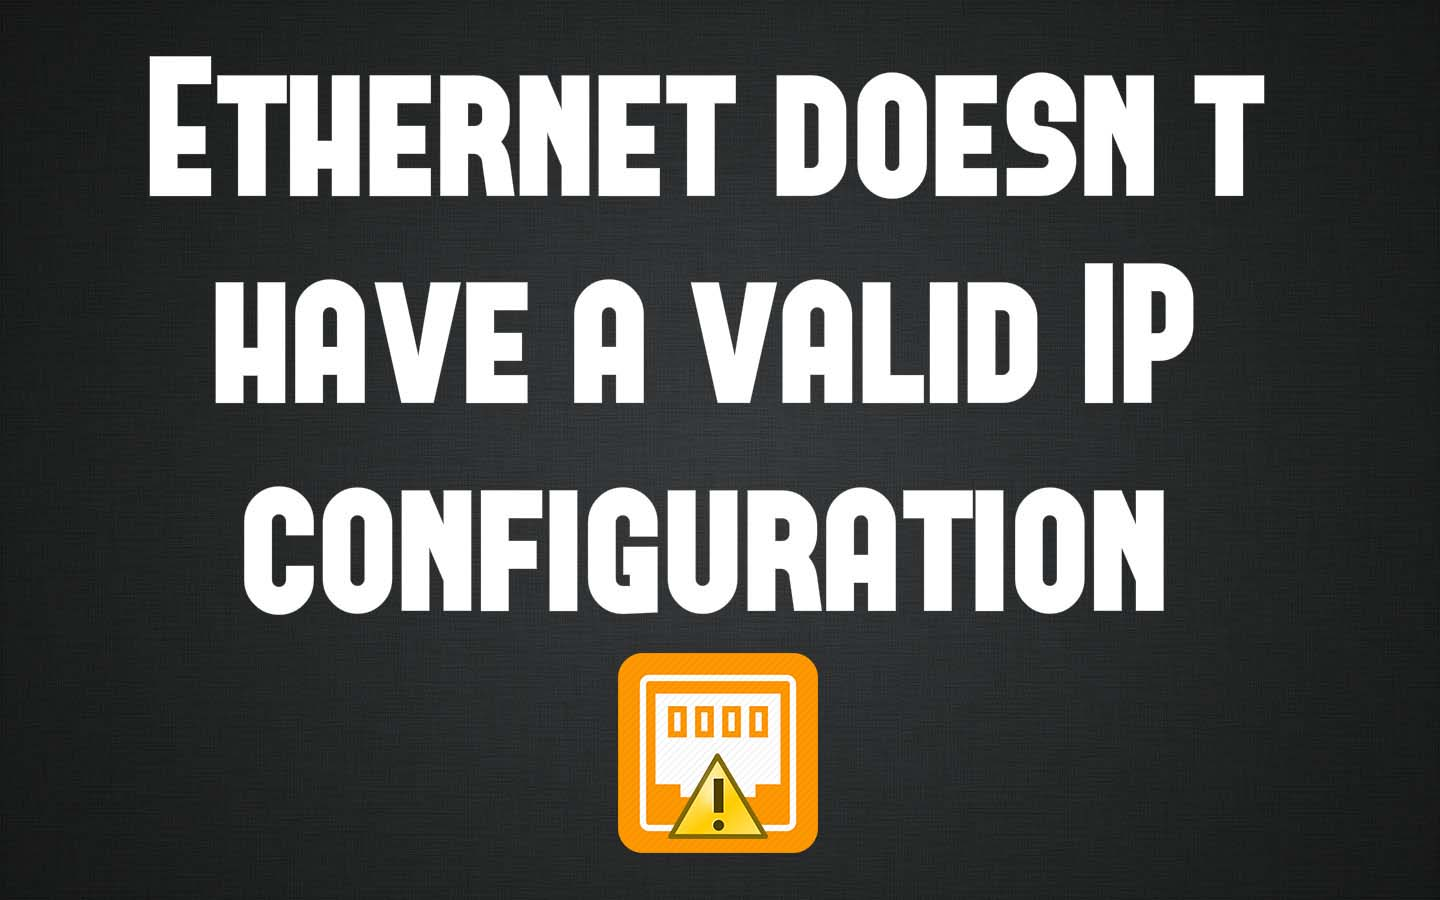 How To Fix Ethernet Doesn T Have A Valid Ip Configuration Error